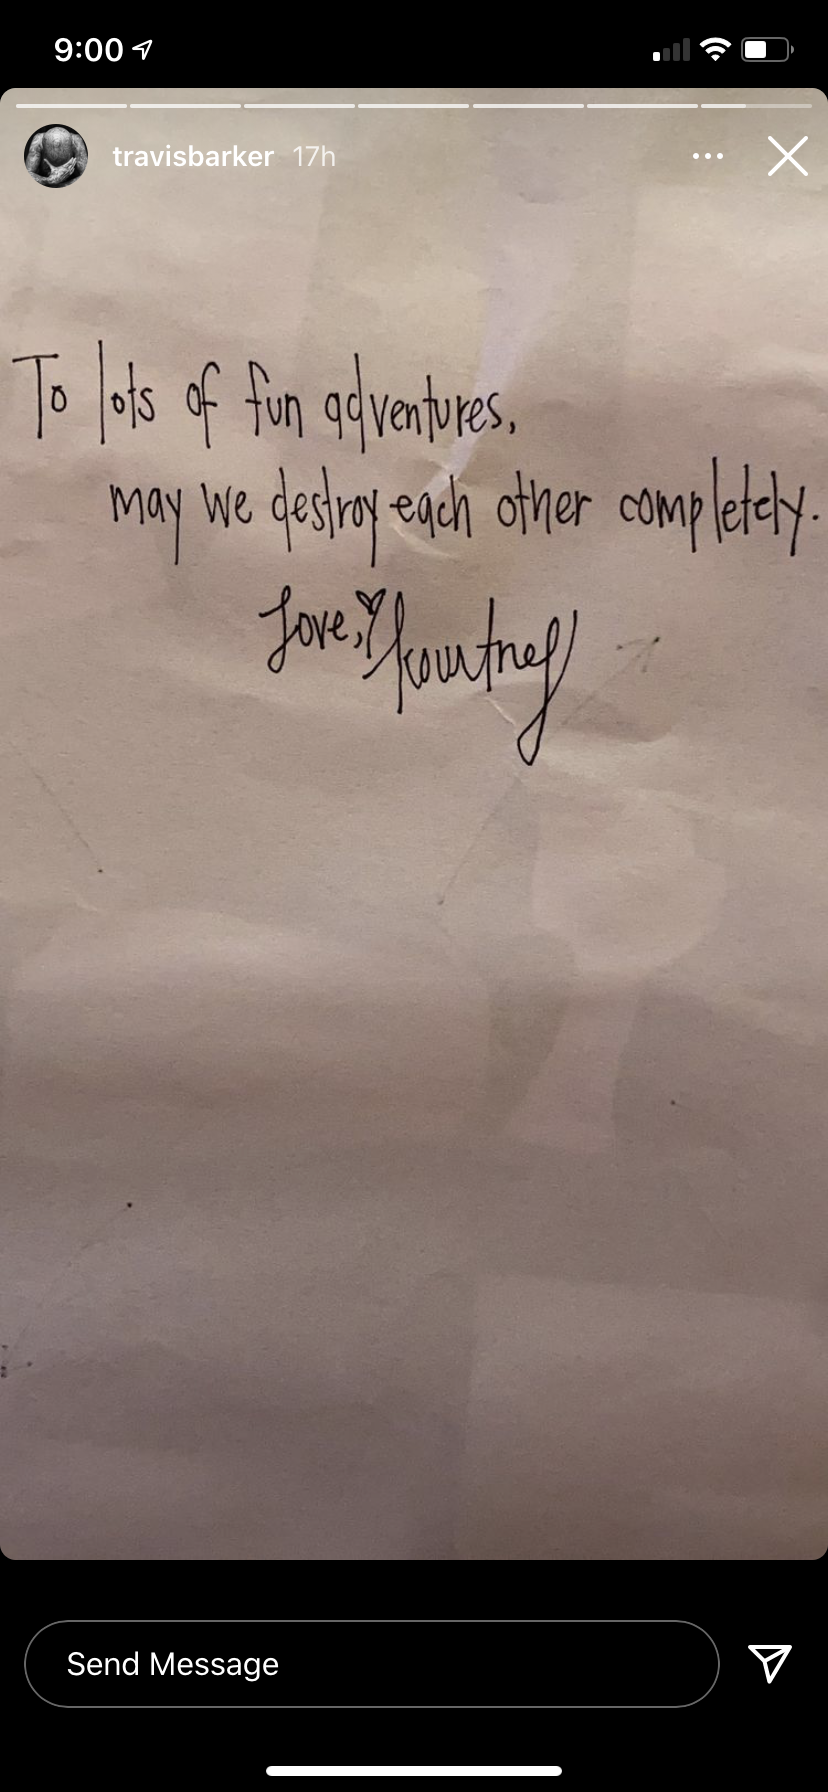 """The notes says, """"To lots of adventures. May we destroy each other completely. Love (a heart) Kourtney"""""""